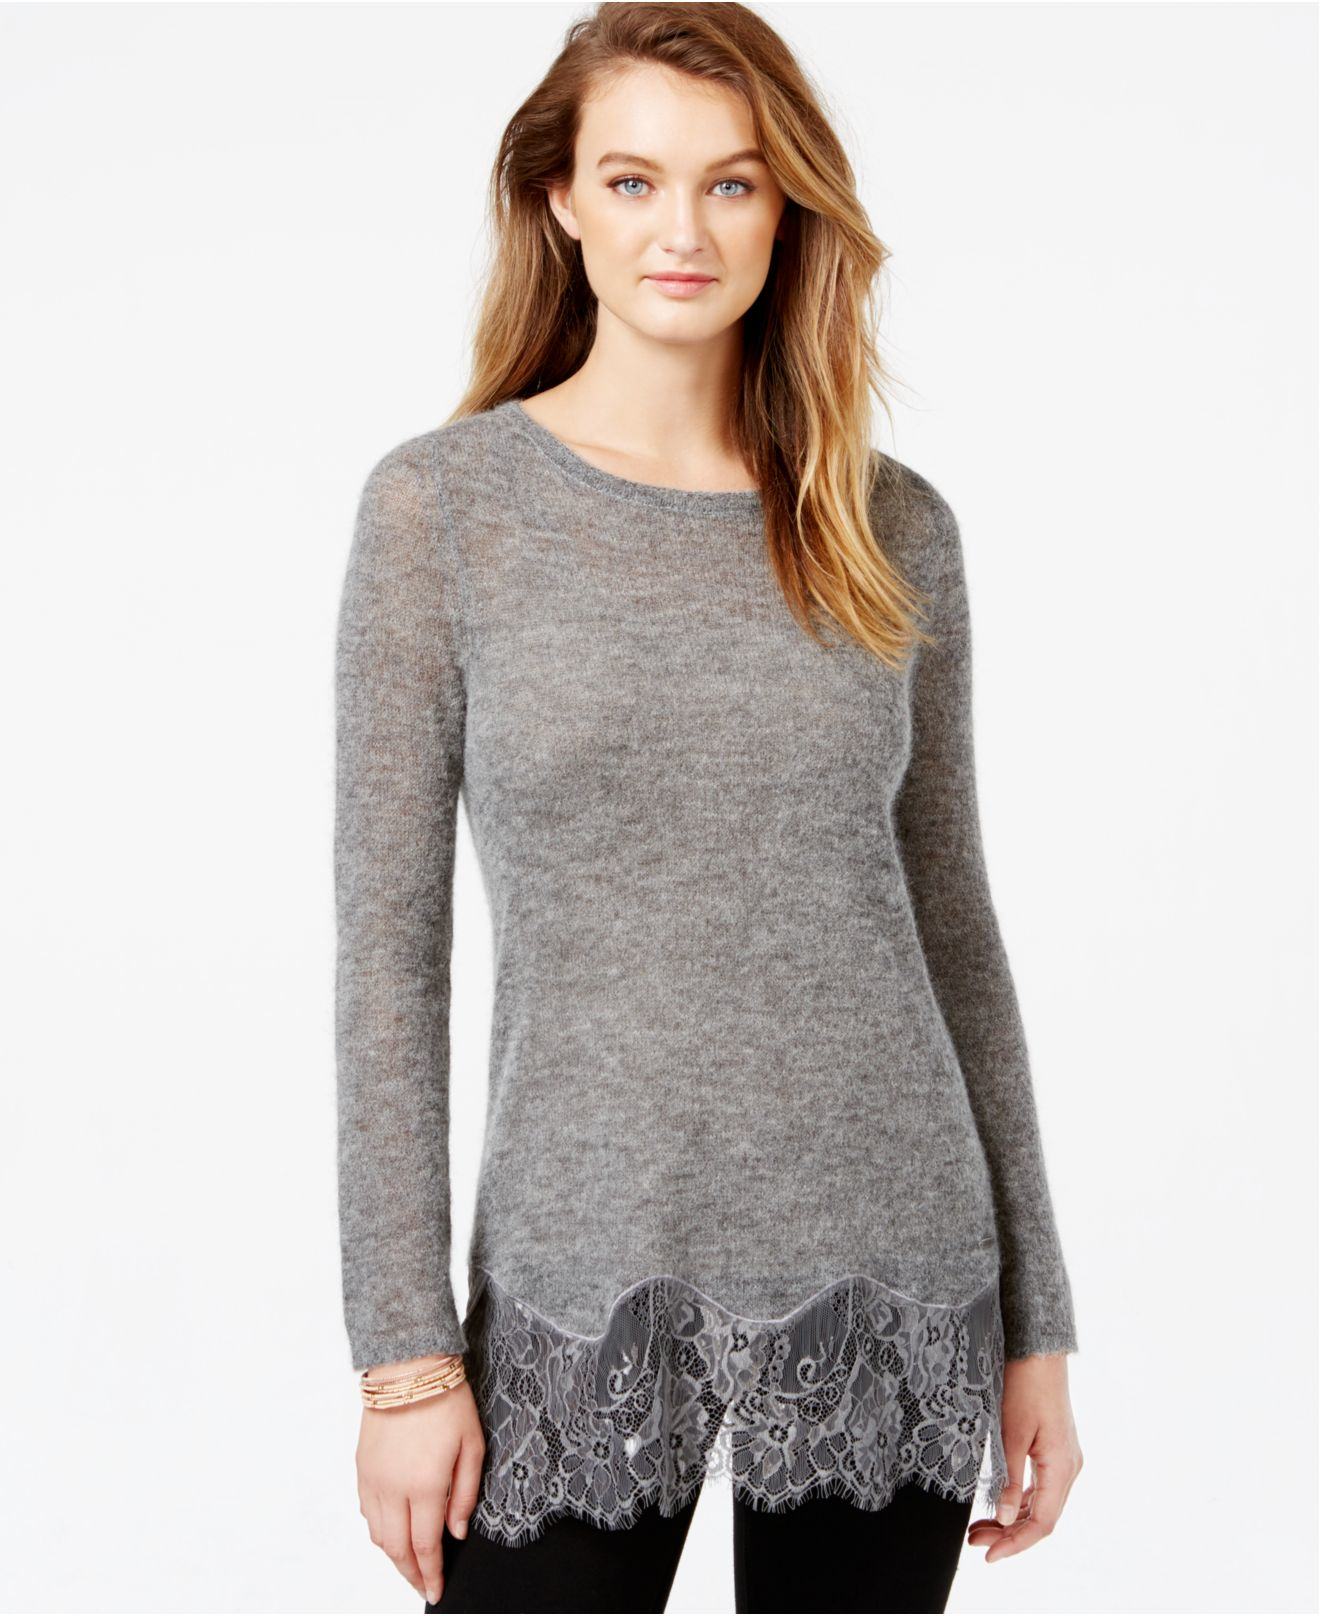 Guess Lace-trim Tunic Sweater in Gray | Lyst